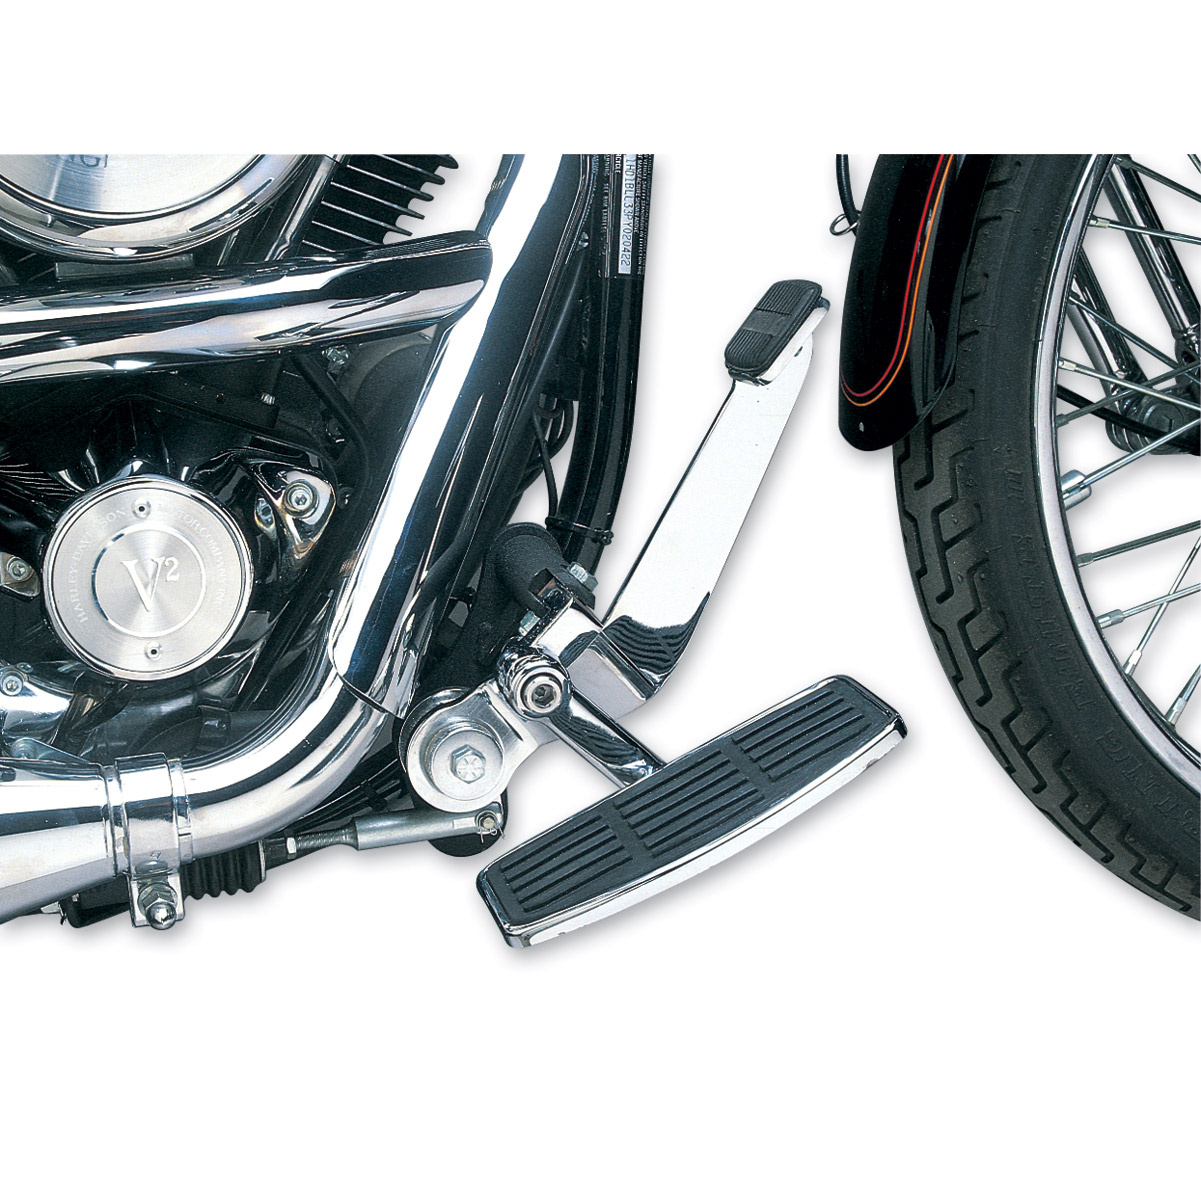 J&P Cycles® Adjustable Driver's Mini-Floorboard Kit